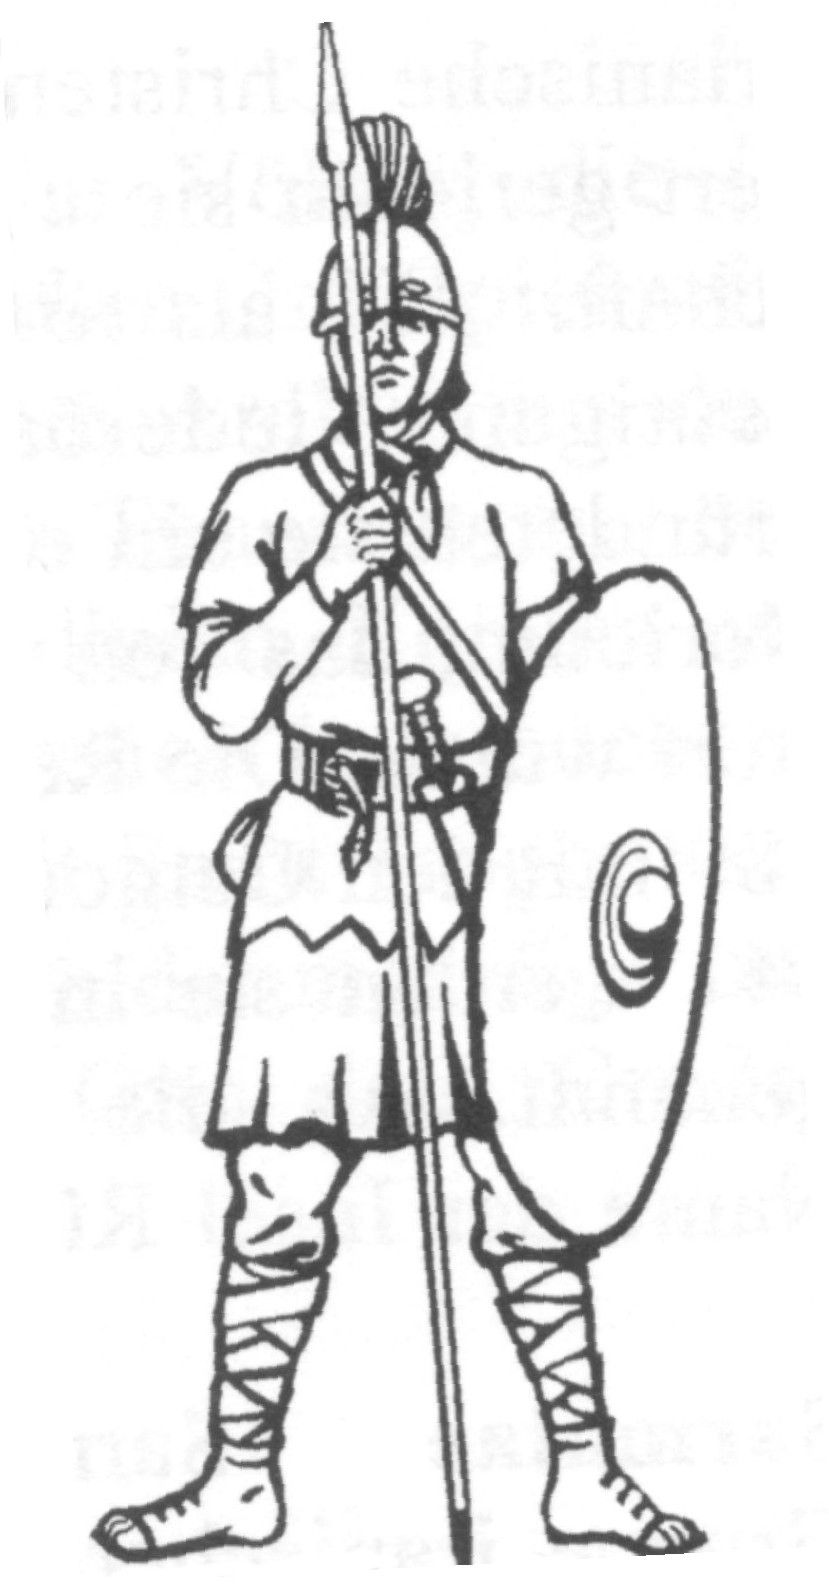 Roman Soldier Drawing - Bing Images